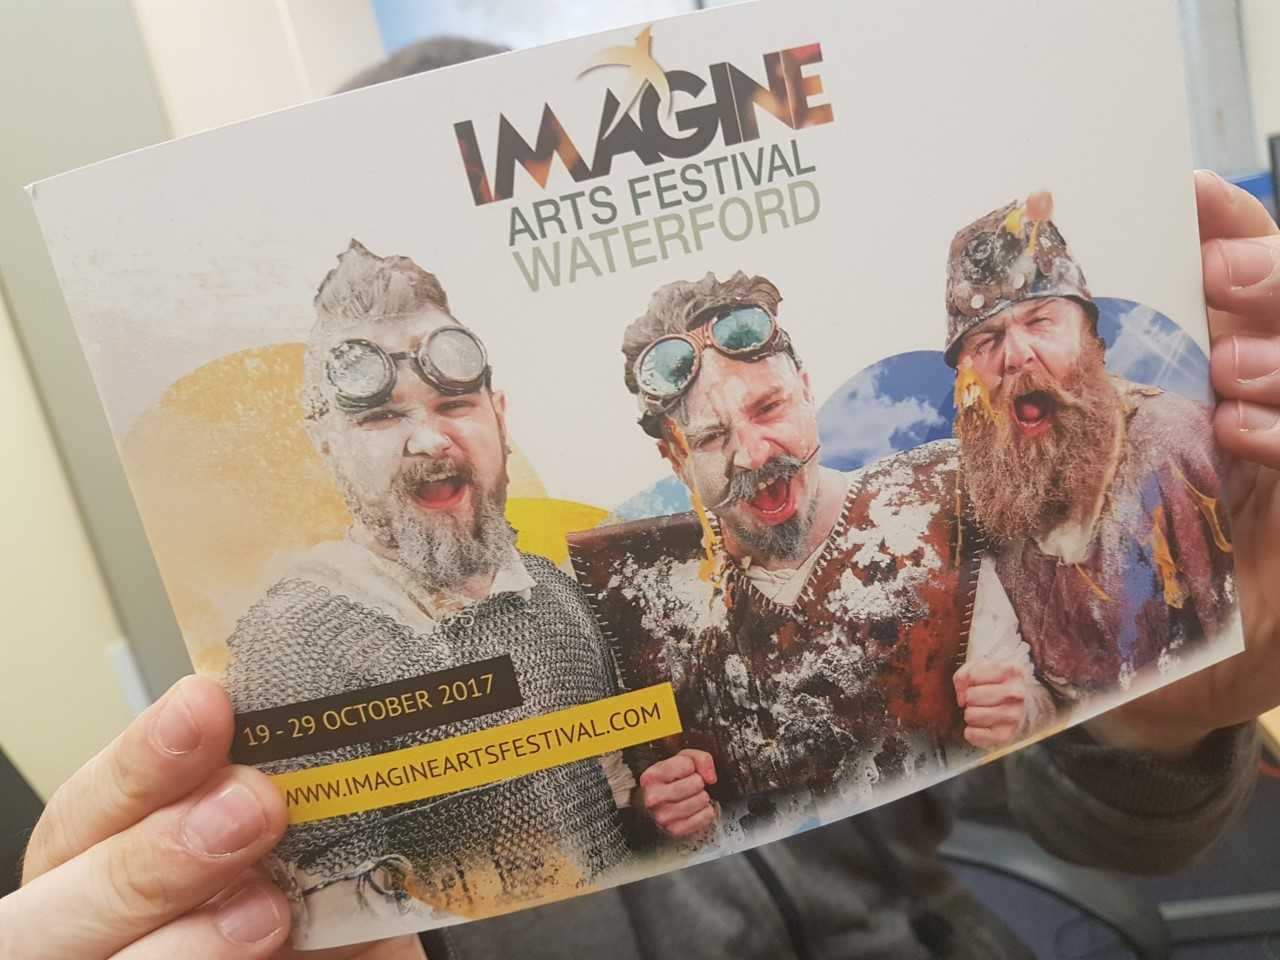 Listen: This year's Imagine Arts Festival has a bumper line up!